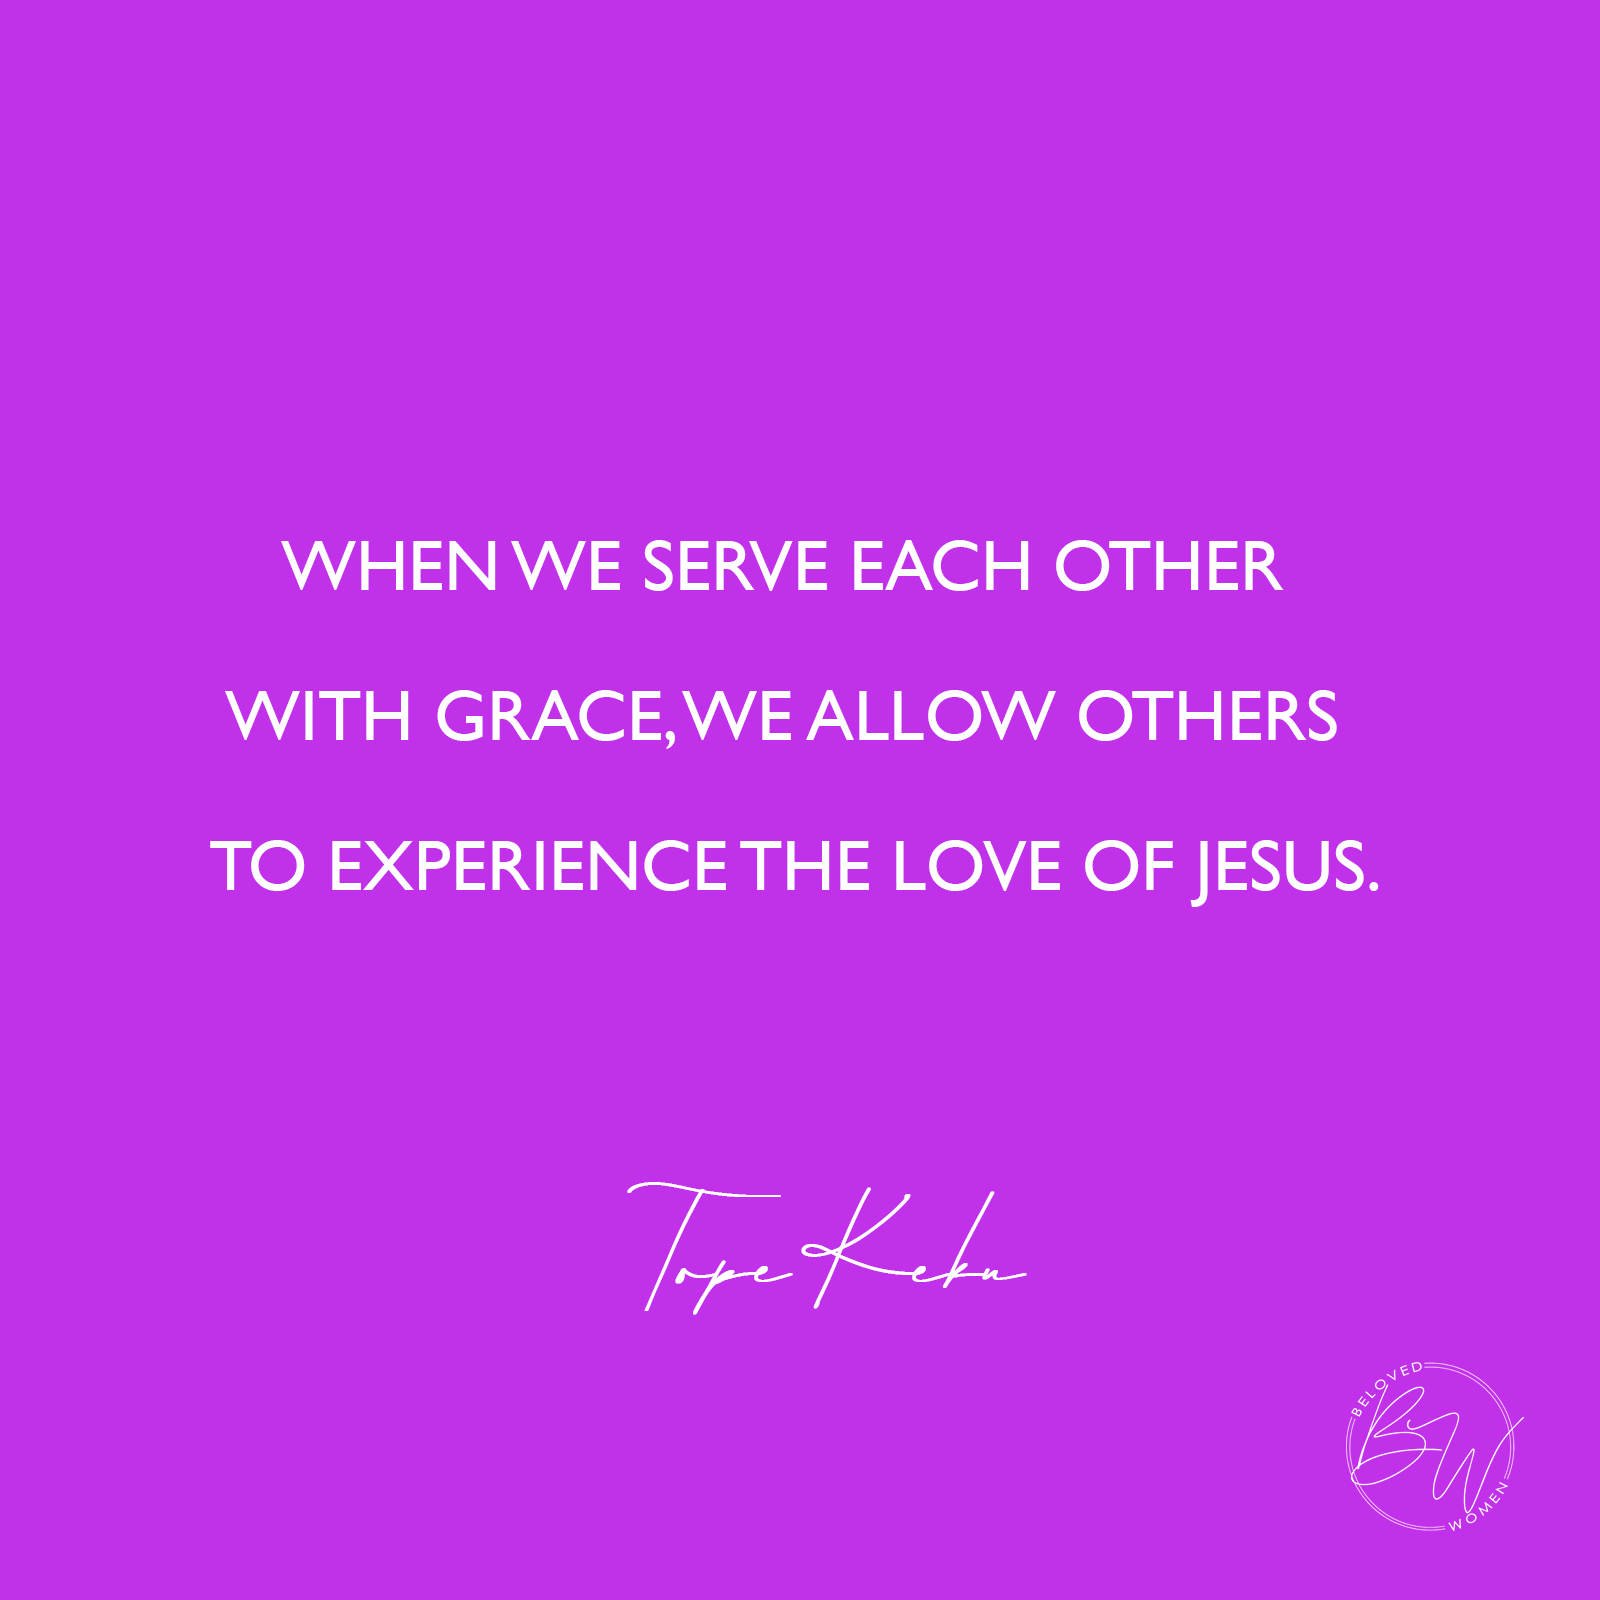 Serve one another with grace